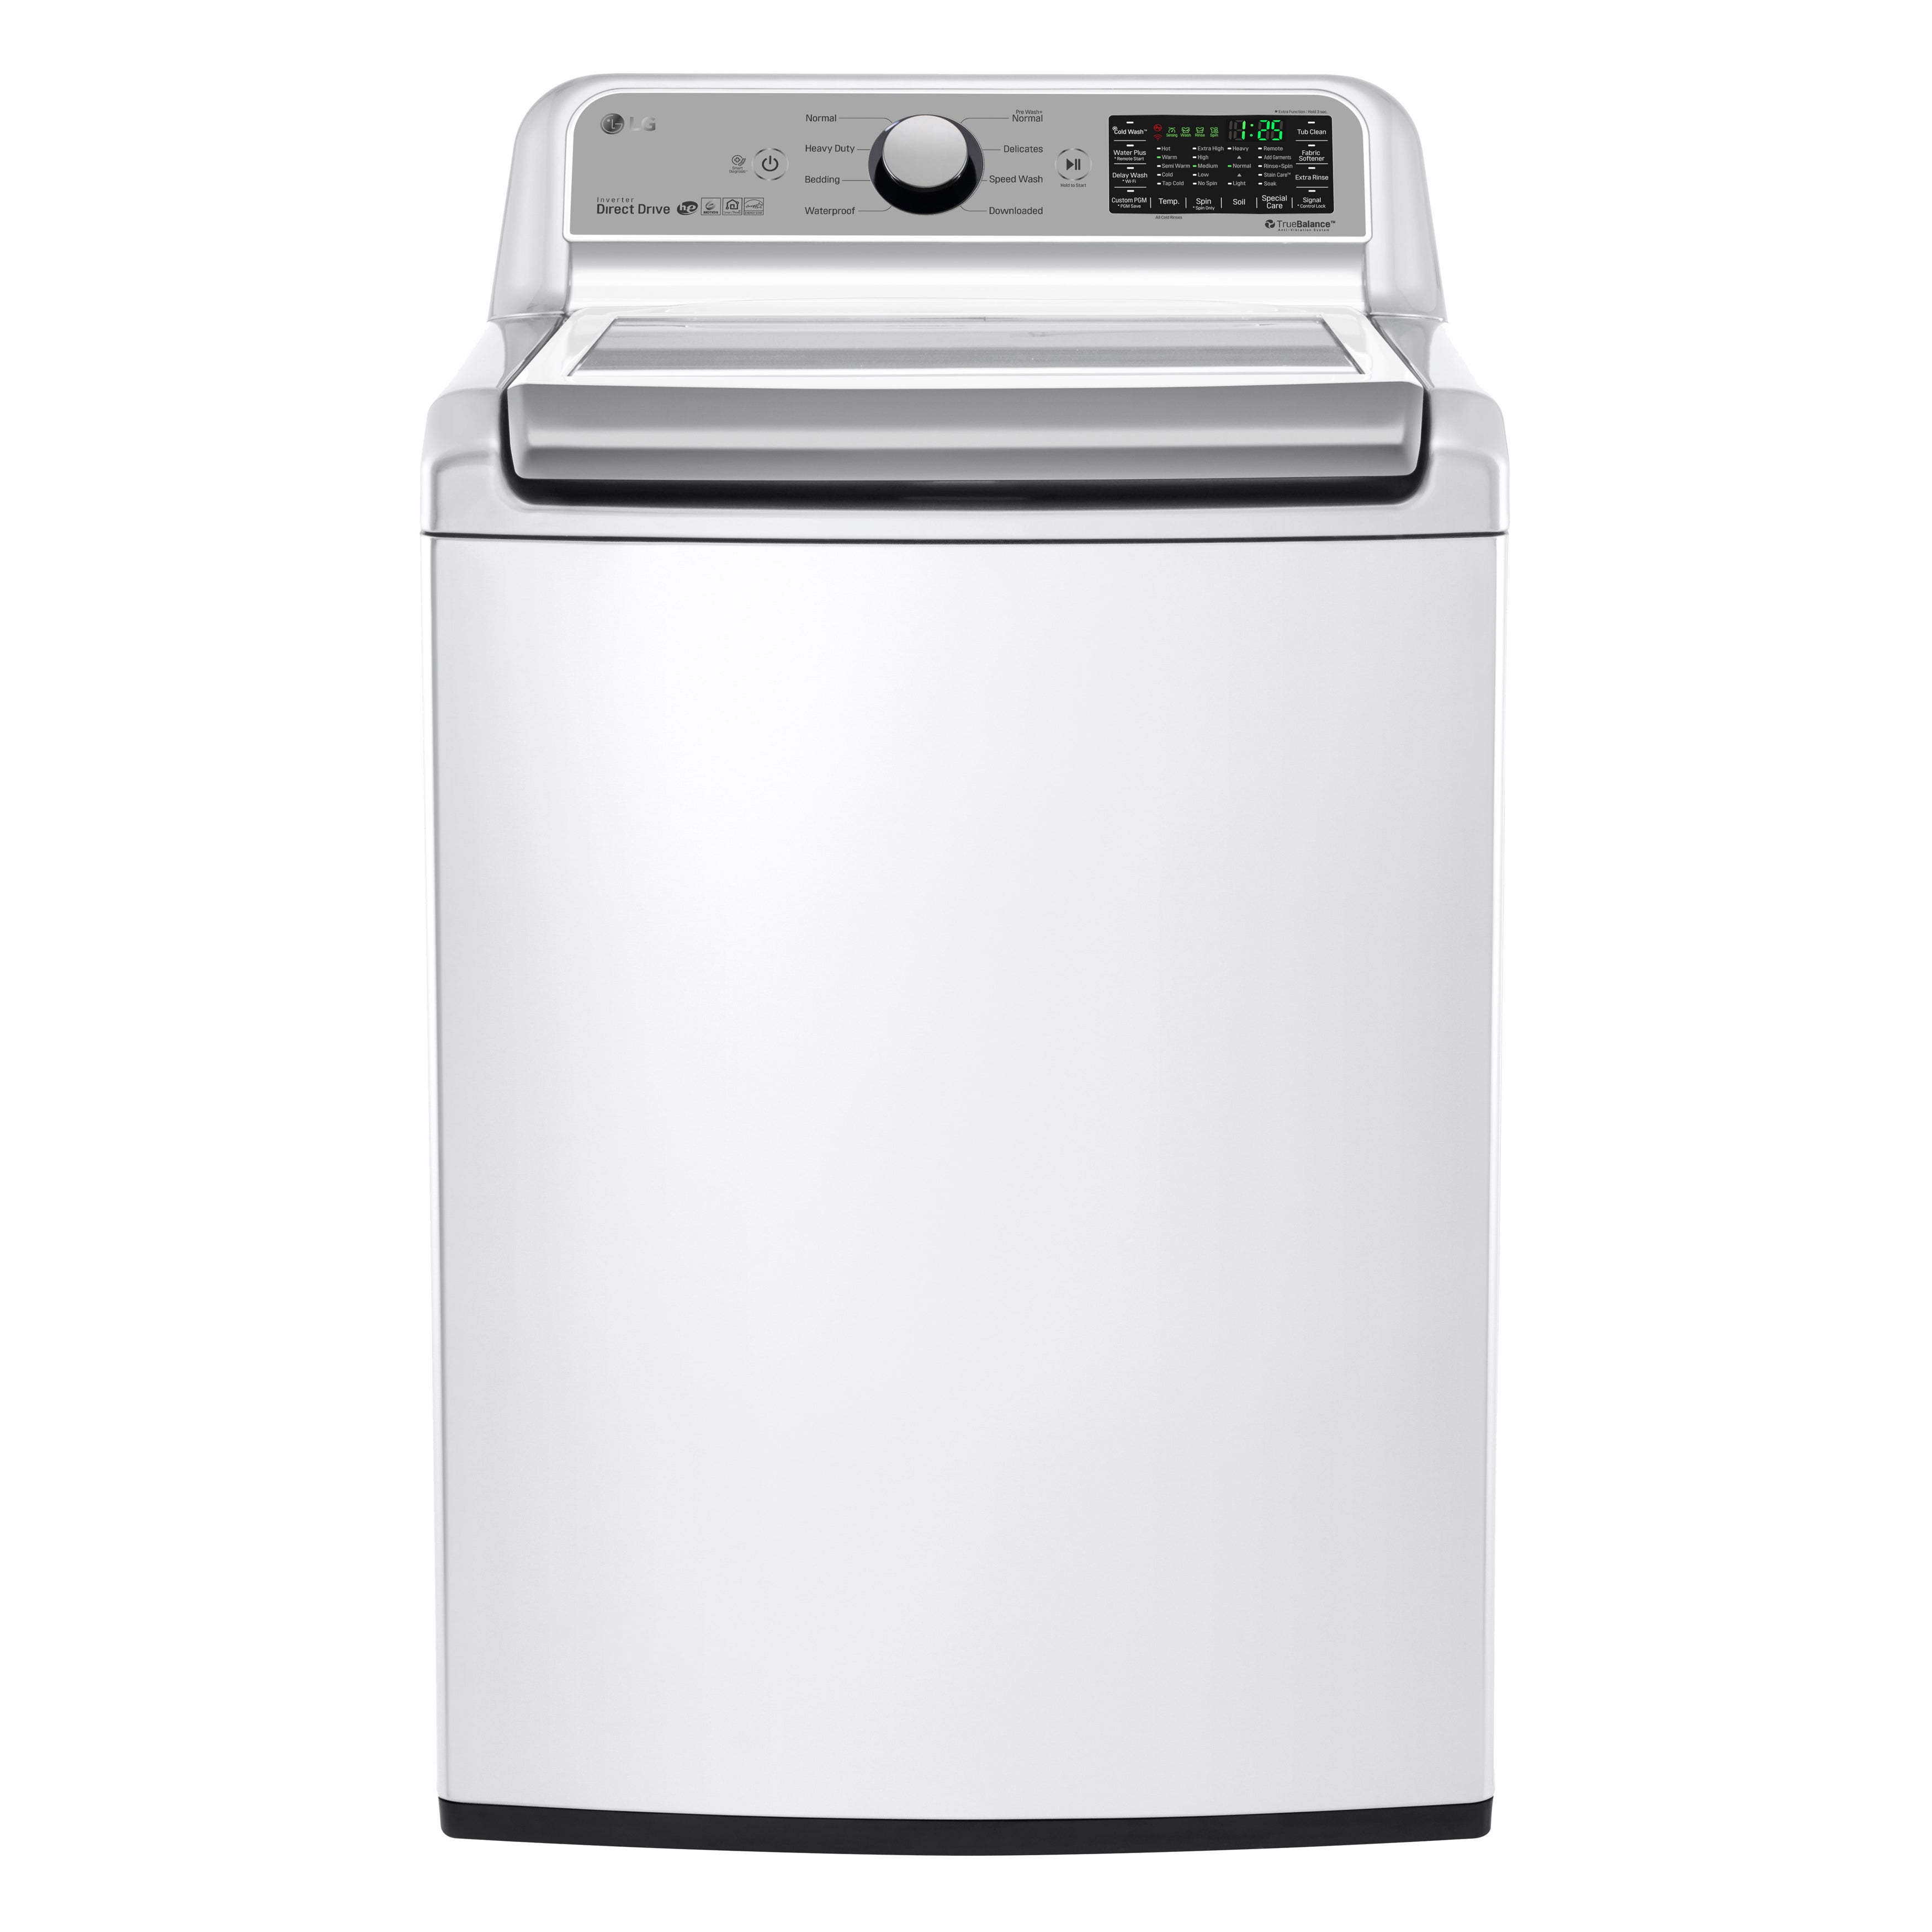 LG WT7200CW 5.0 cu.ft. Mega Capacity Top Load Washer in W...